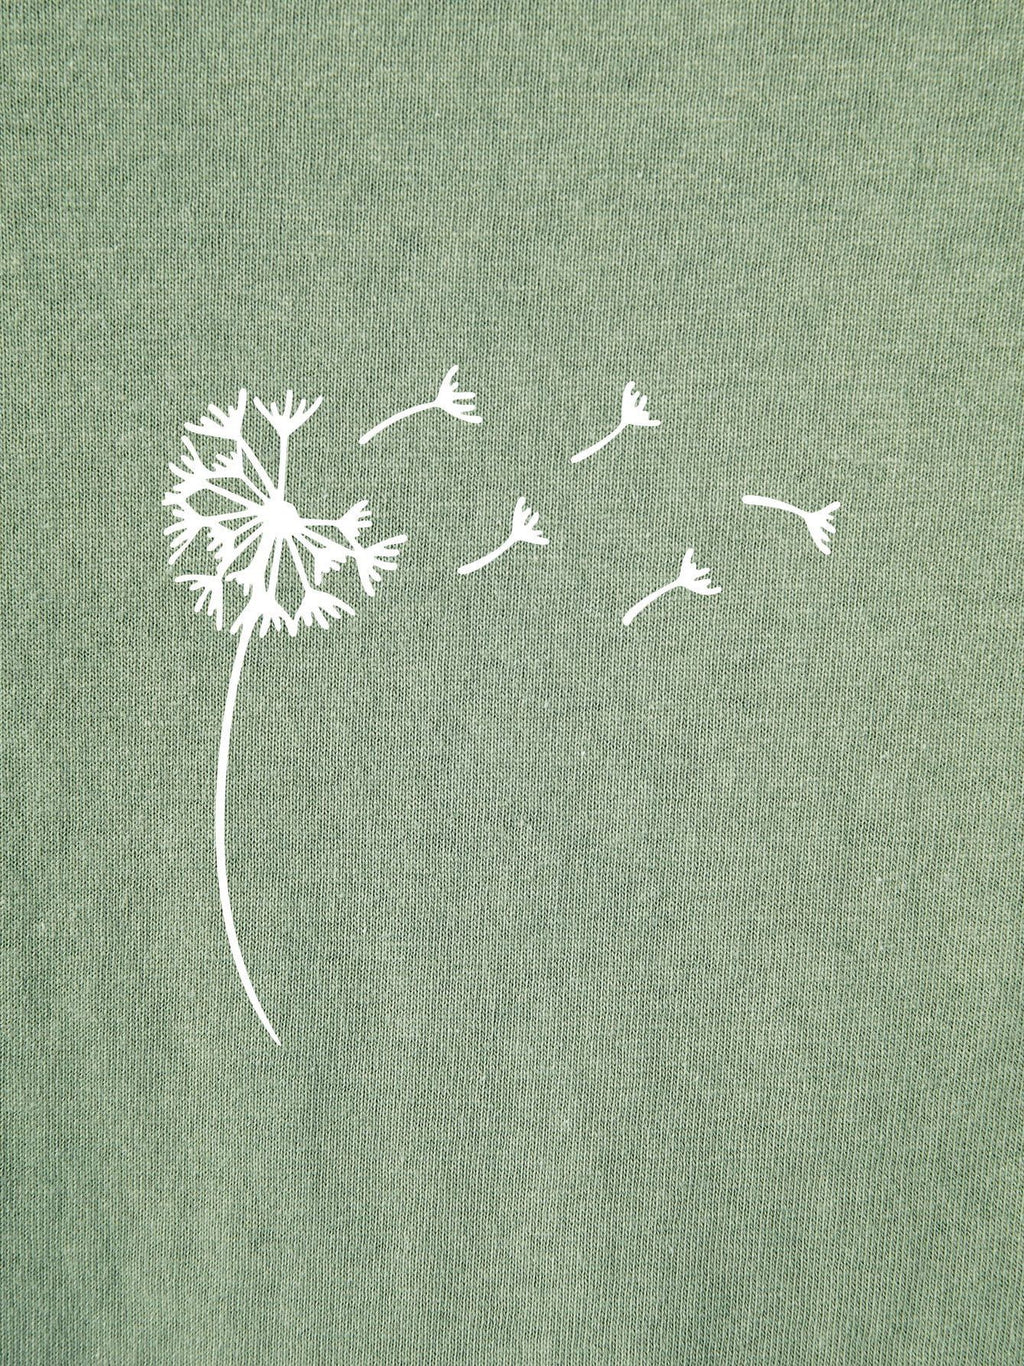 Dandelion Print Round Neck Tee - INS | Online Fashion Free Shipping Clothing, Dresses, Tops, Shoes